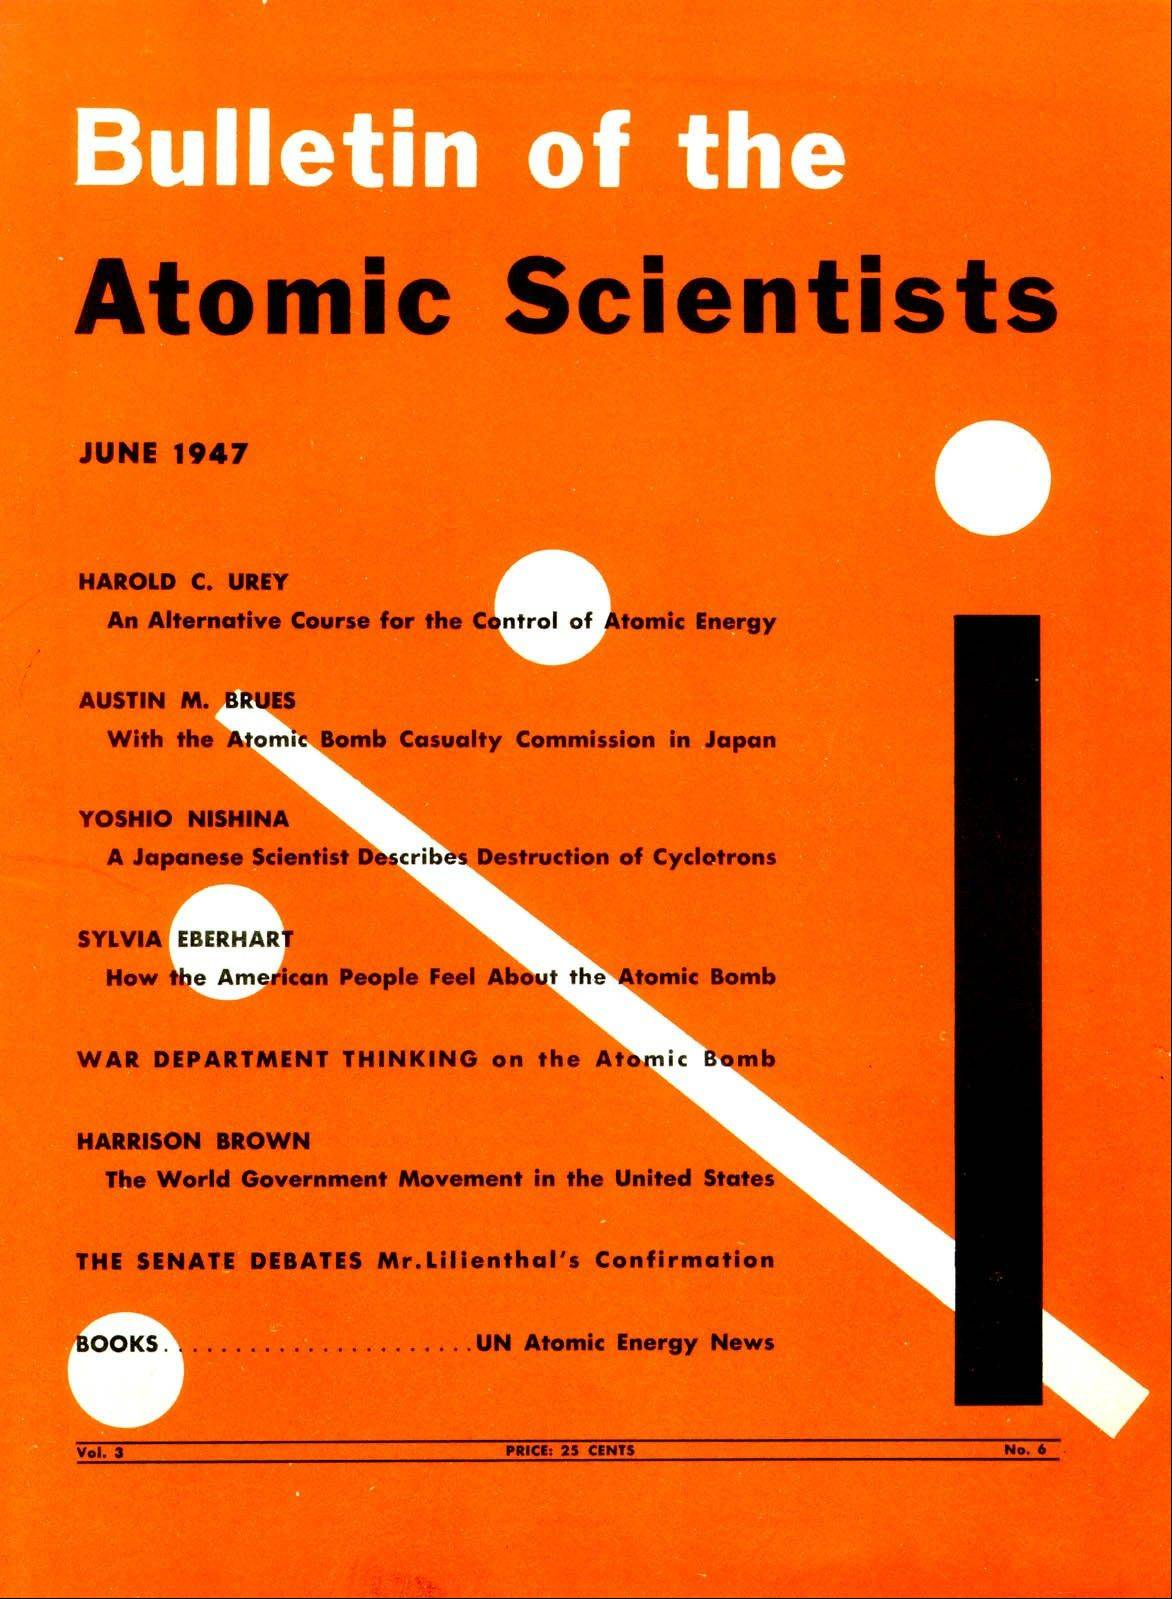 The cover of the June 1947 Bulletin of the Atomic Scientists designed by Martyl Langsdorf features the first visual depiction of the Doomsday Clock.